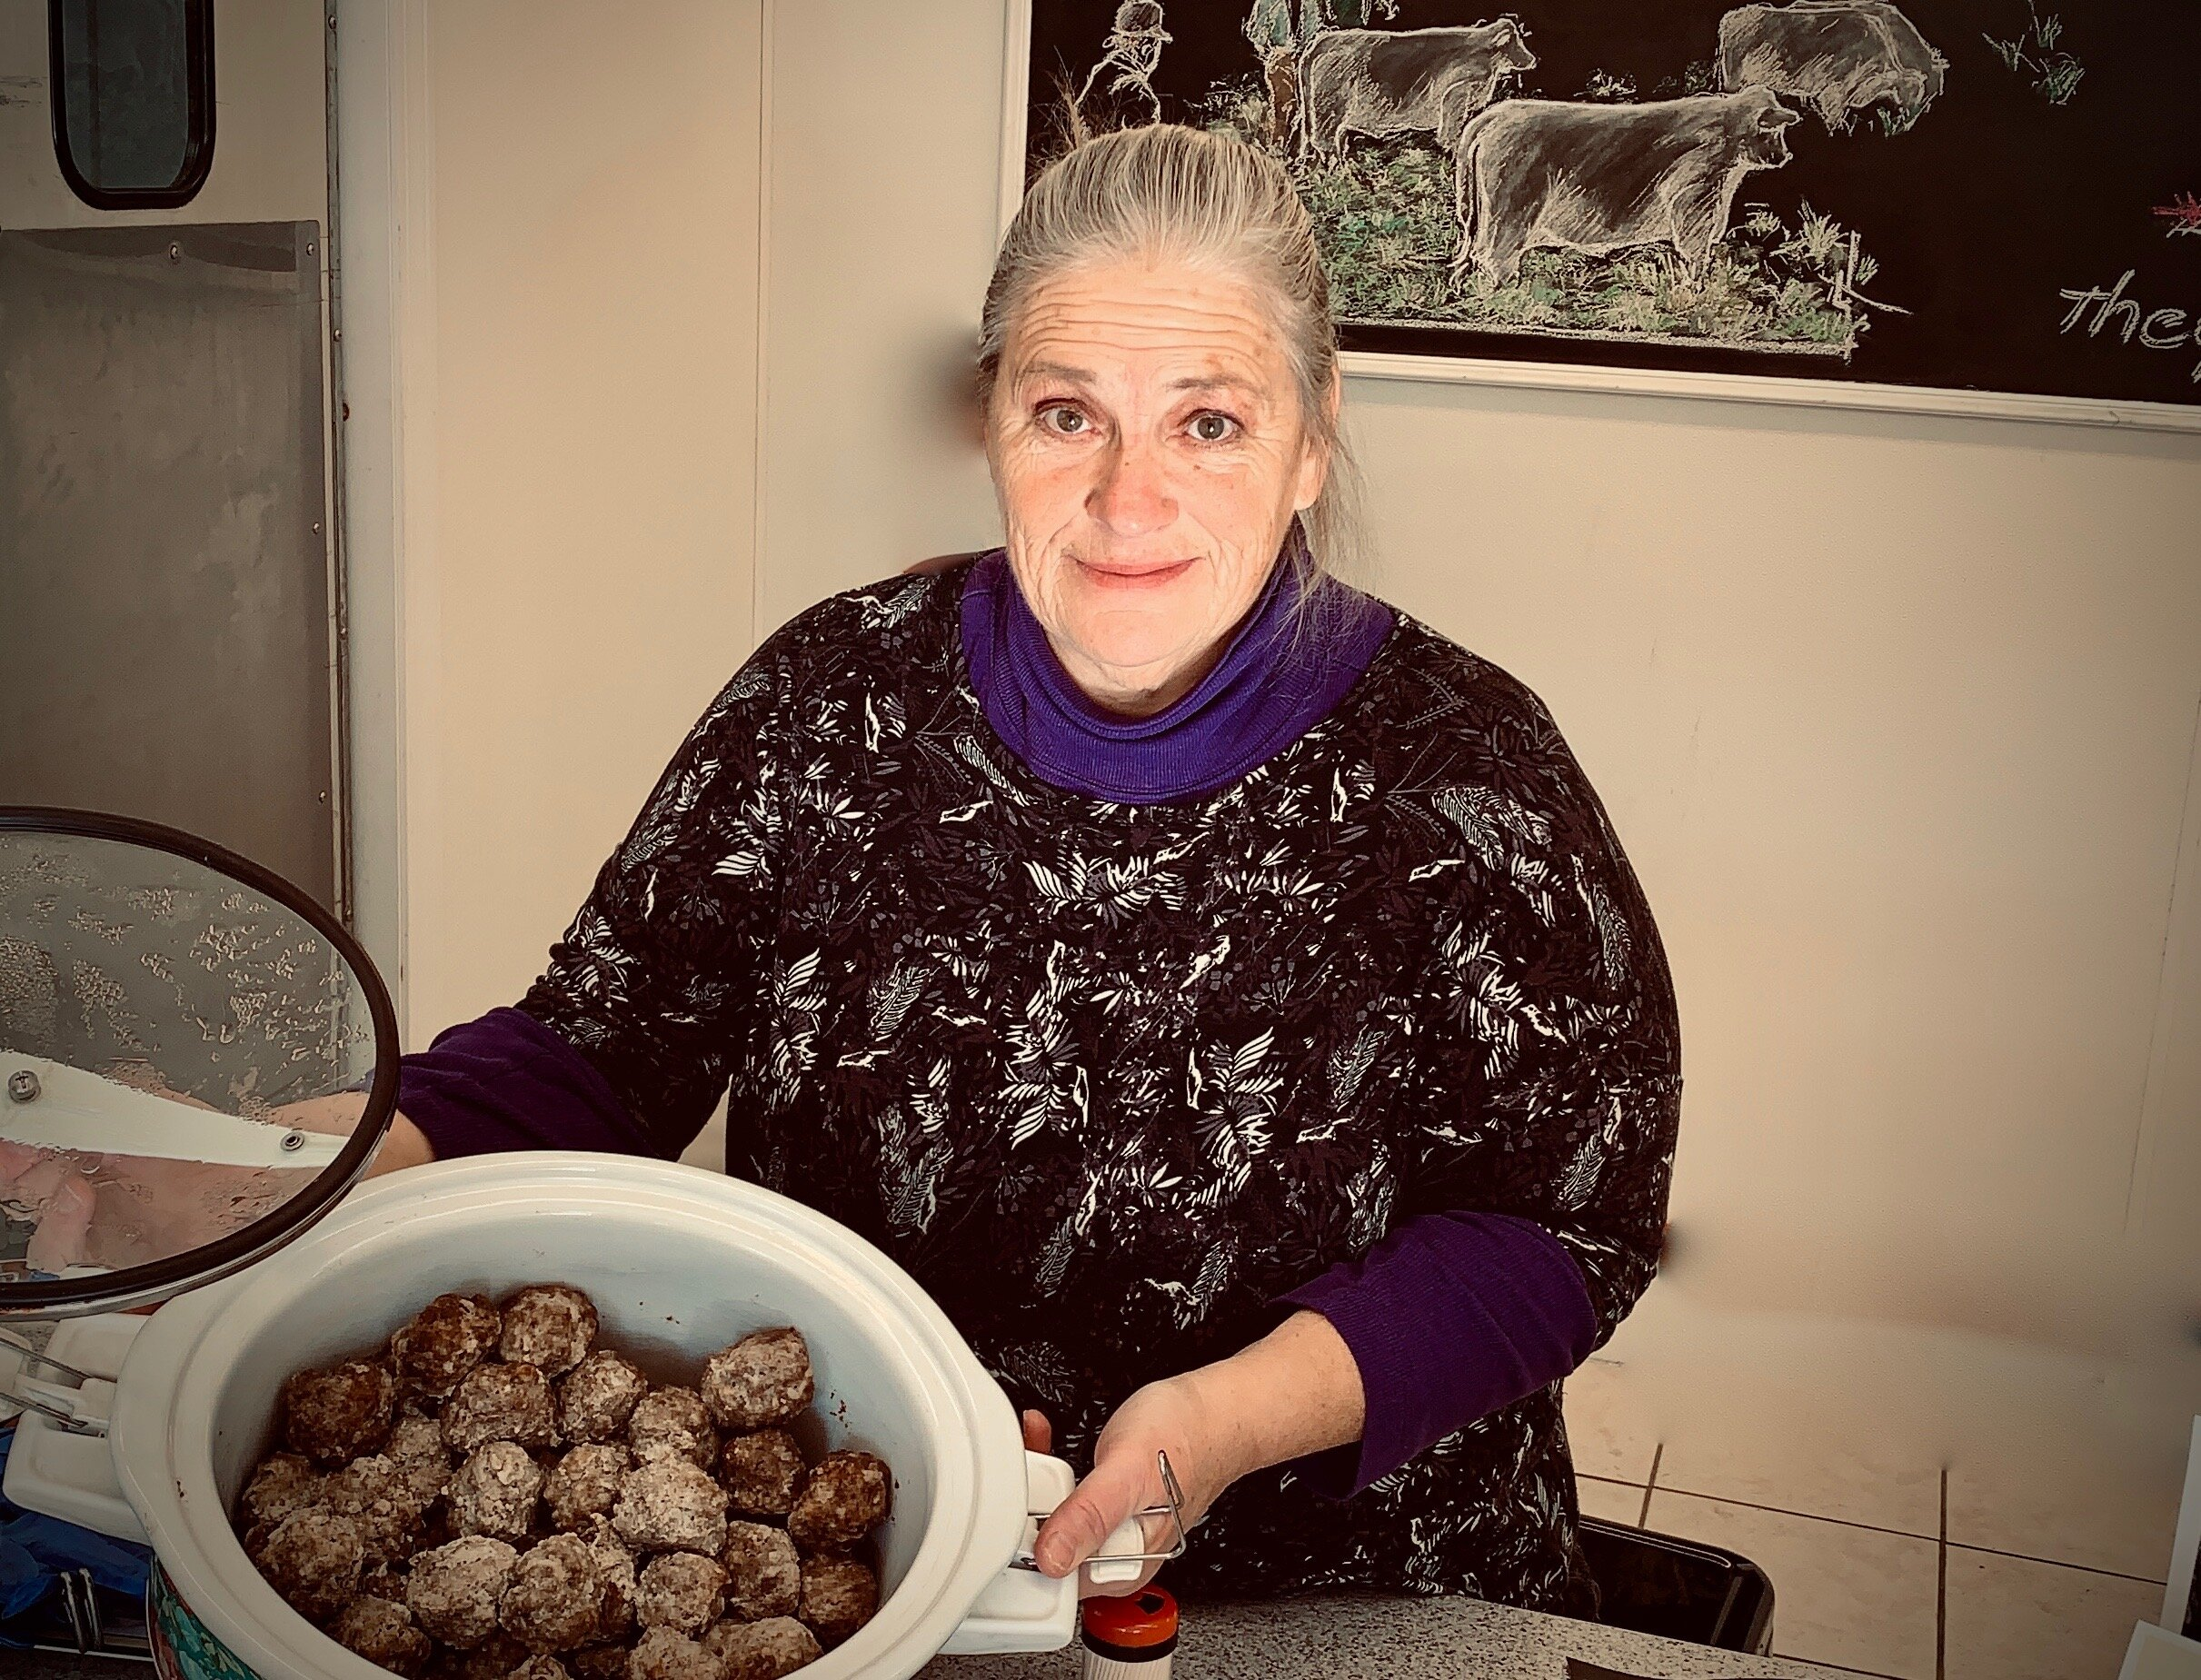 Our neighbor Robin Corey makes the best meatballs - with Heartstone Farm ground beef - and she's sharing her recipe.